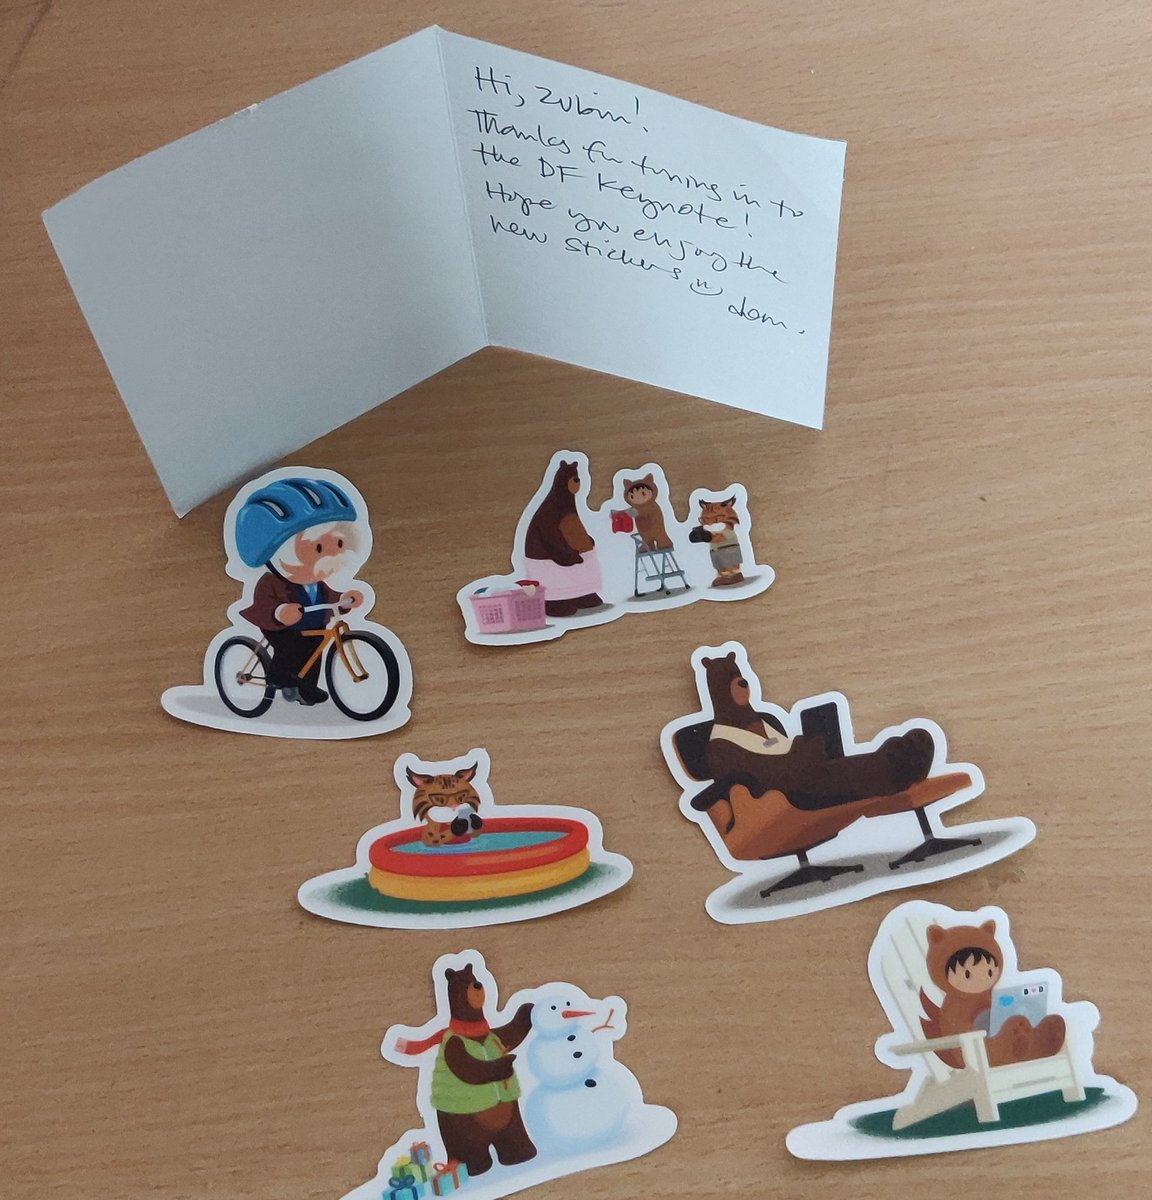 Finally it reached the destination!  Thank you @littleiglooo Mam for this letter and sticker swag. You made #dreamtx a memorable one!